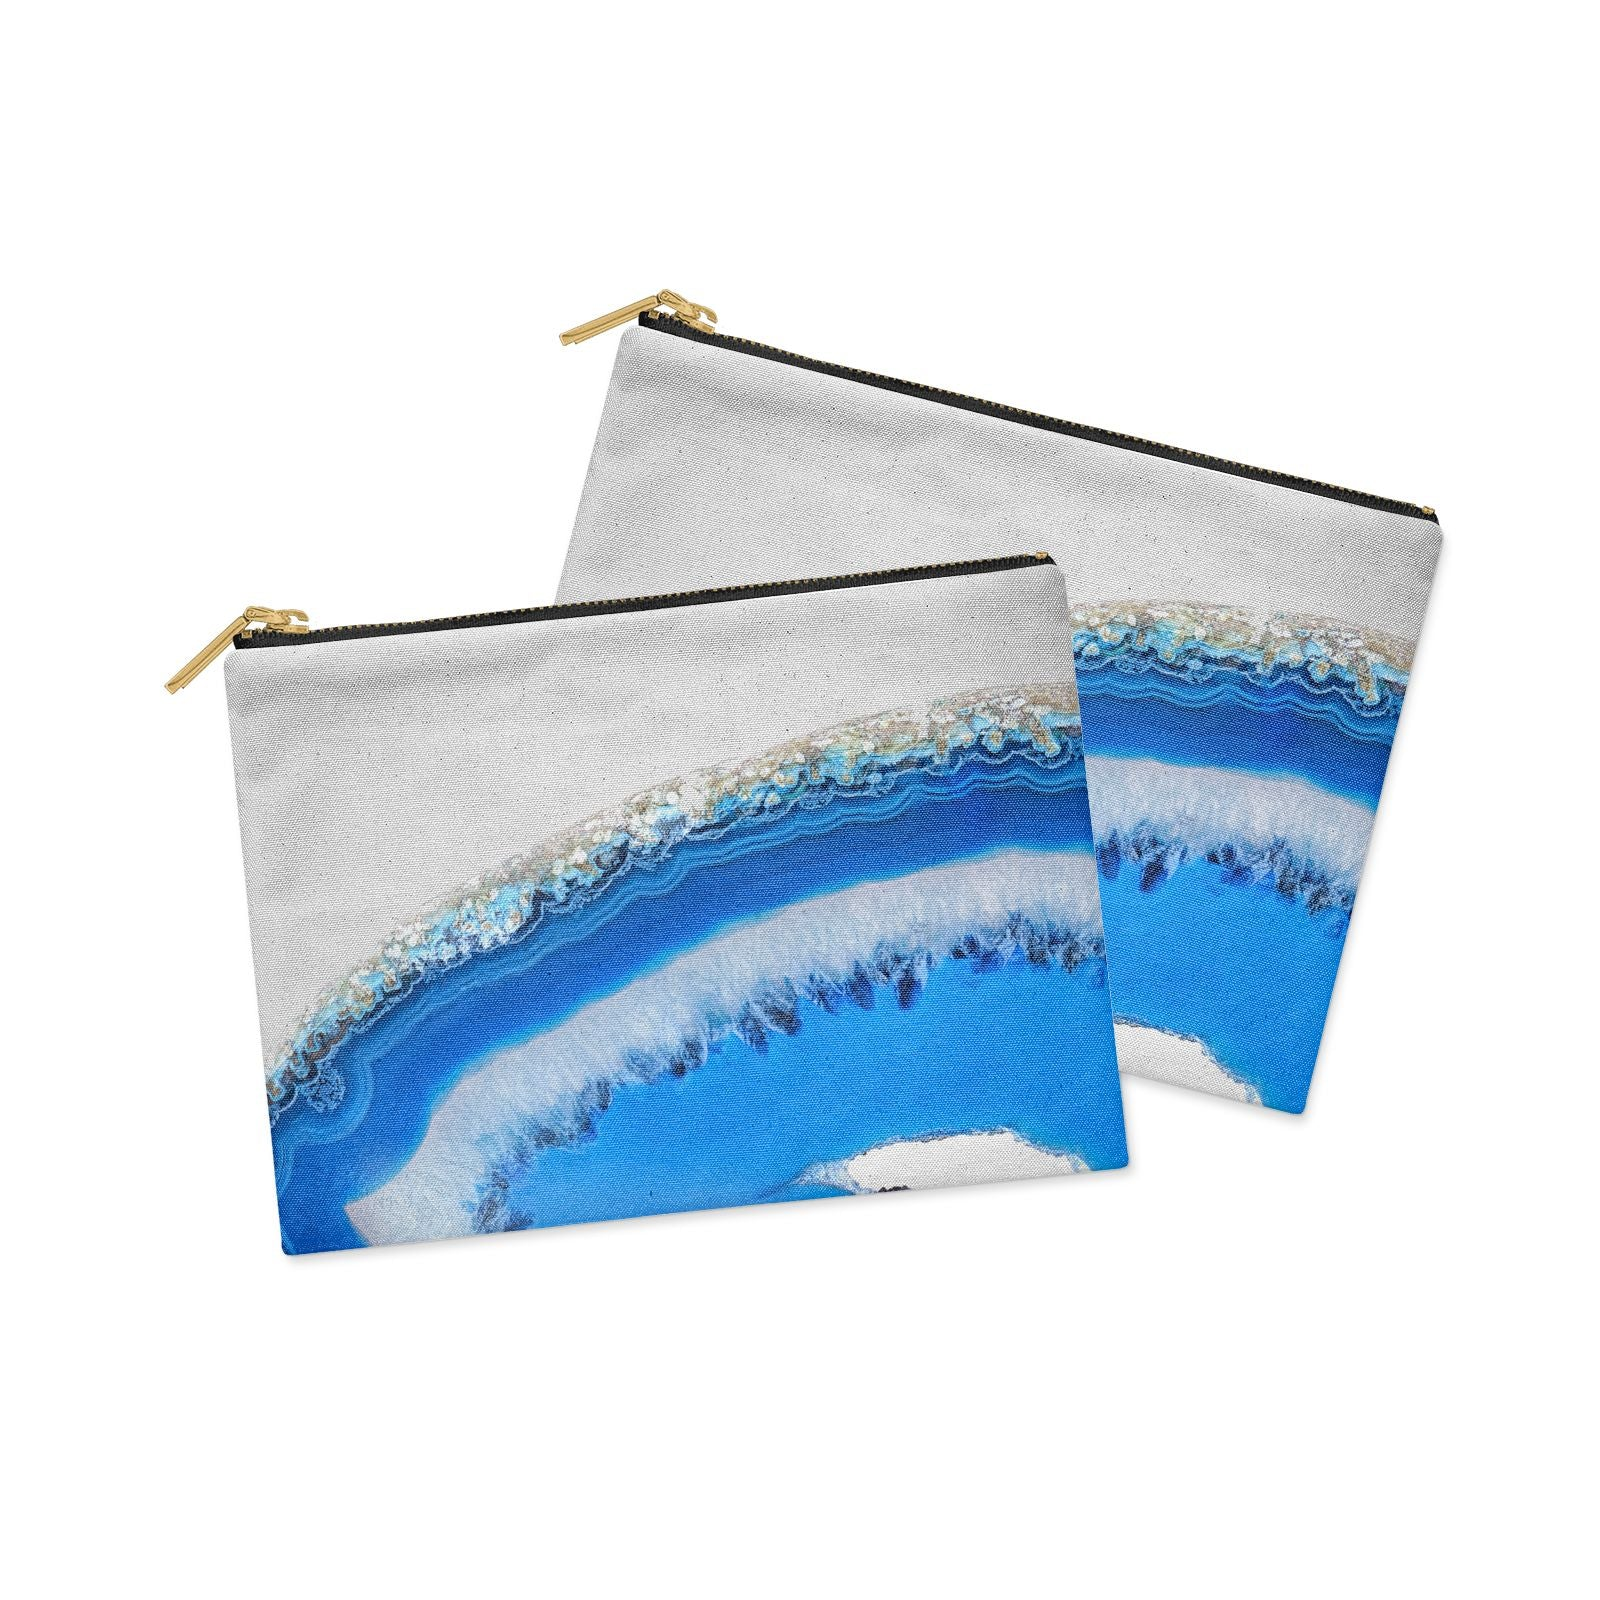 Agate Blue Clutch Bag Zipper Pouch Alternative View